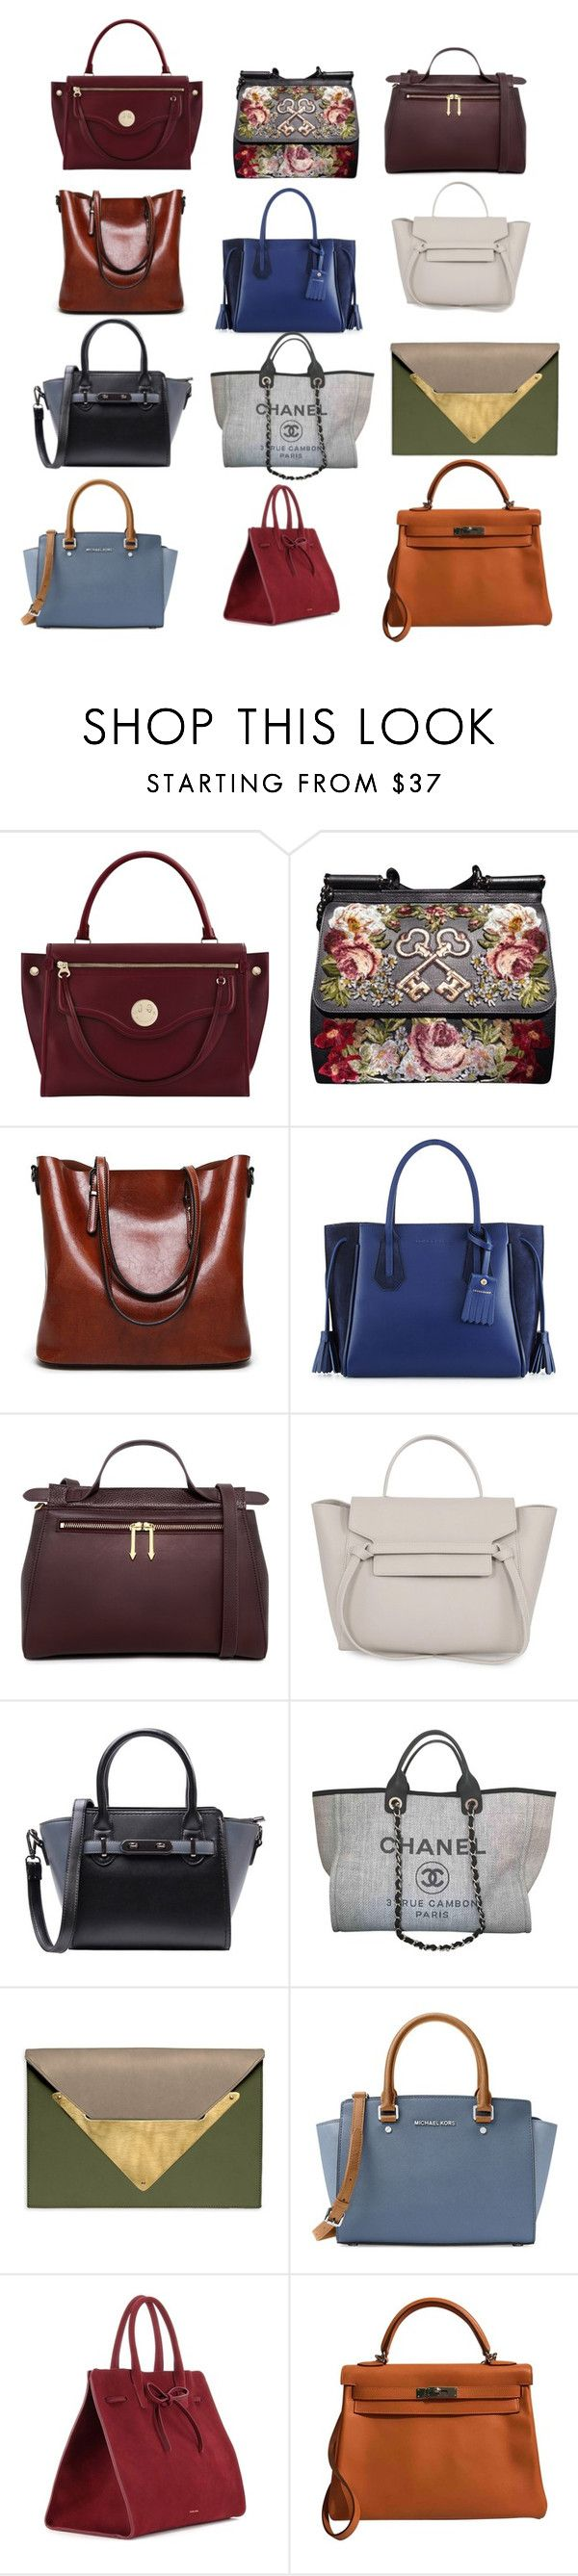 """Татьяна_сумки"" by sovan ❤ liked on Polyvore featuring Hill & Friends, Dolce&Gabbana, Longchamp, Karen Walker, Chanel, Dareen Hakim, MICHAEL Michael Kors, Mansur Gavriel and Hermès"